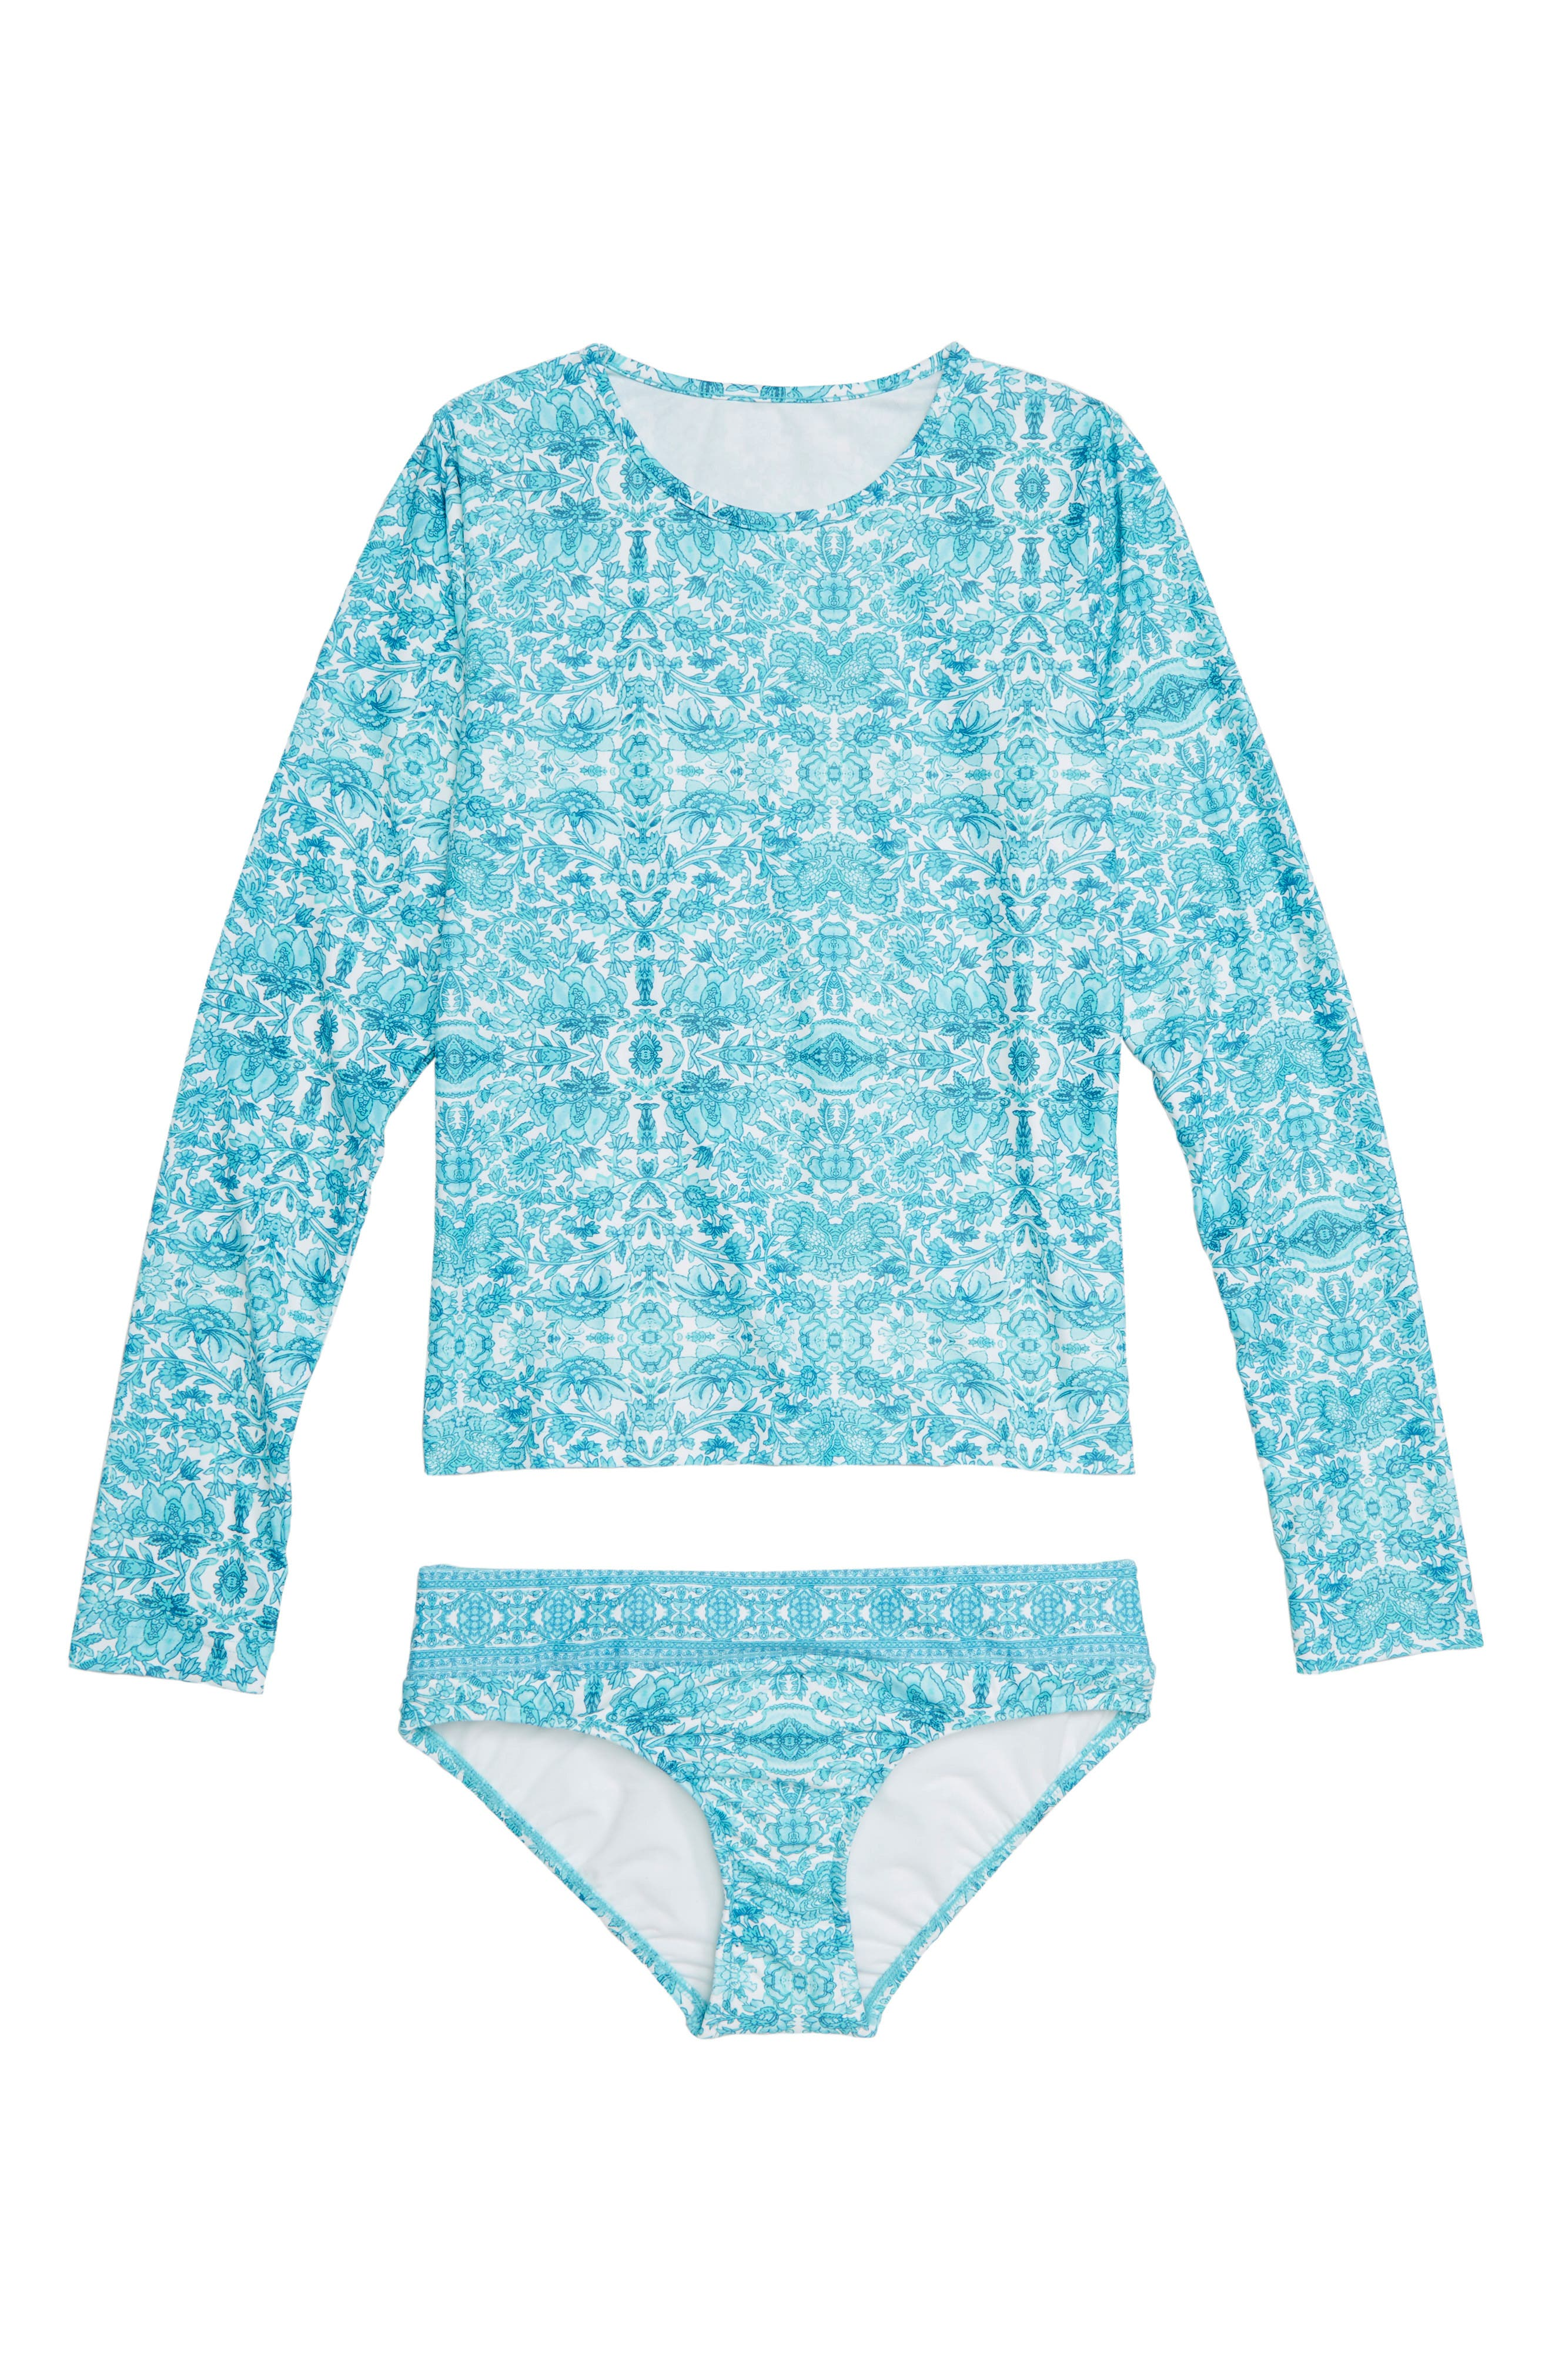 Ocean Tapestry Two-Piece Rashguard Swimsuit,                         Main,                         color, 400